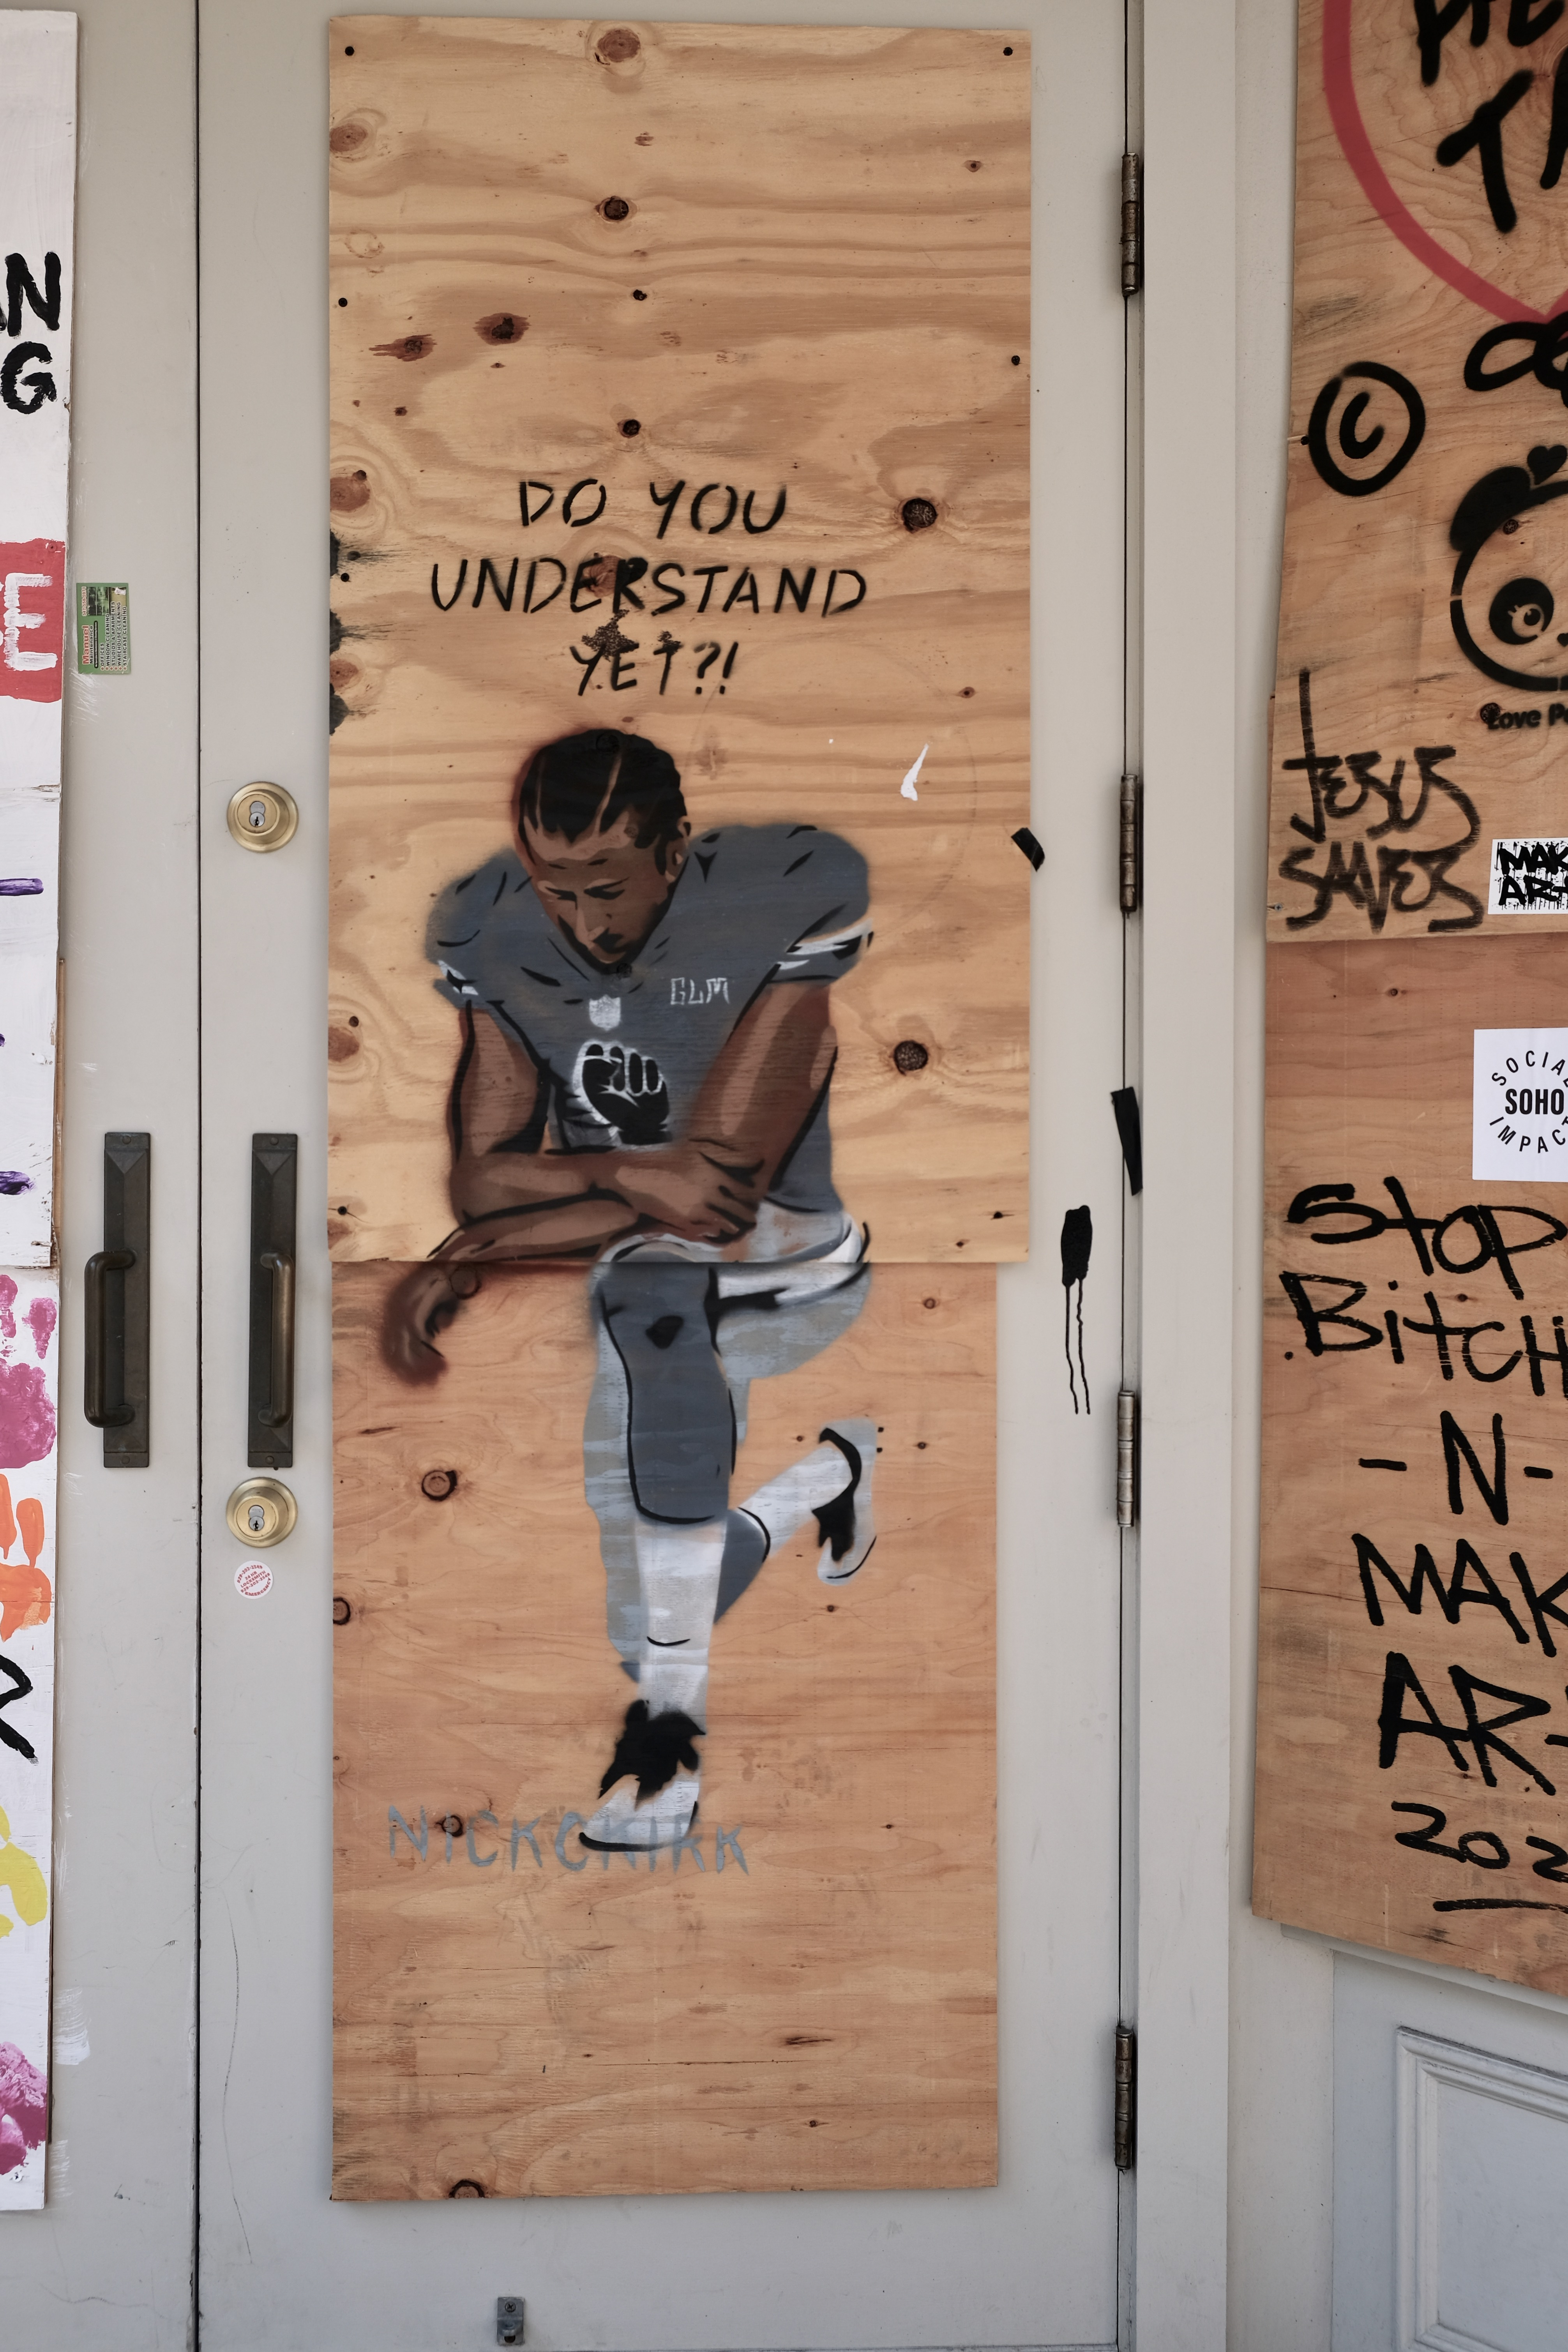 """A picture of a spray painting of Colin Kaepernick, kneeling with a caption saying """"Do you understand yet?!"""""""